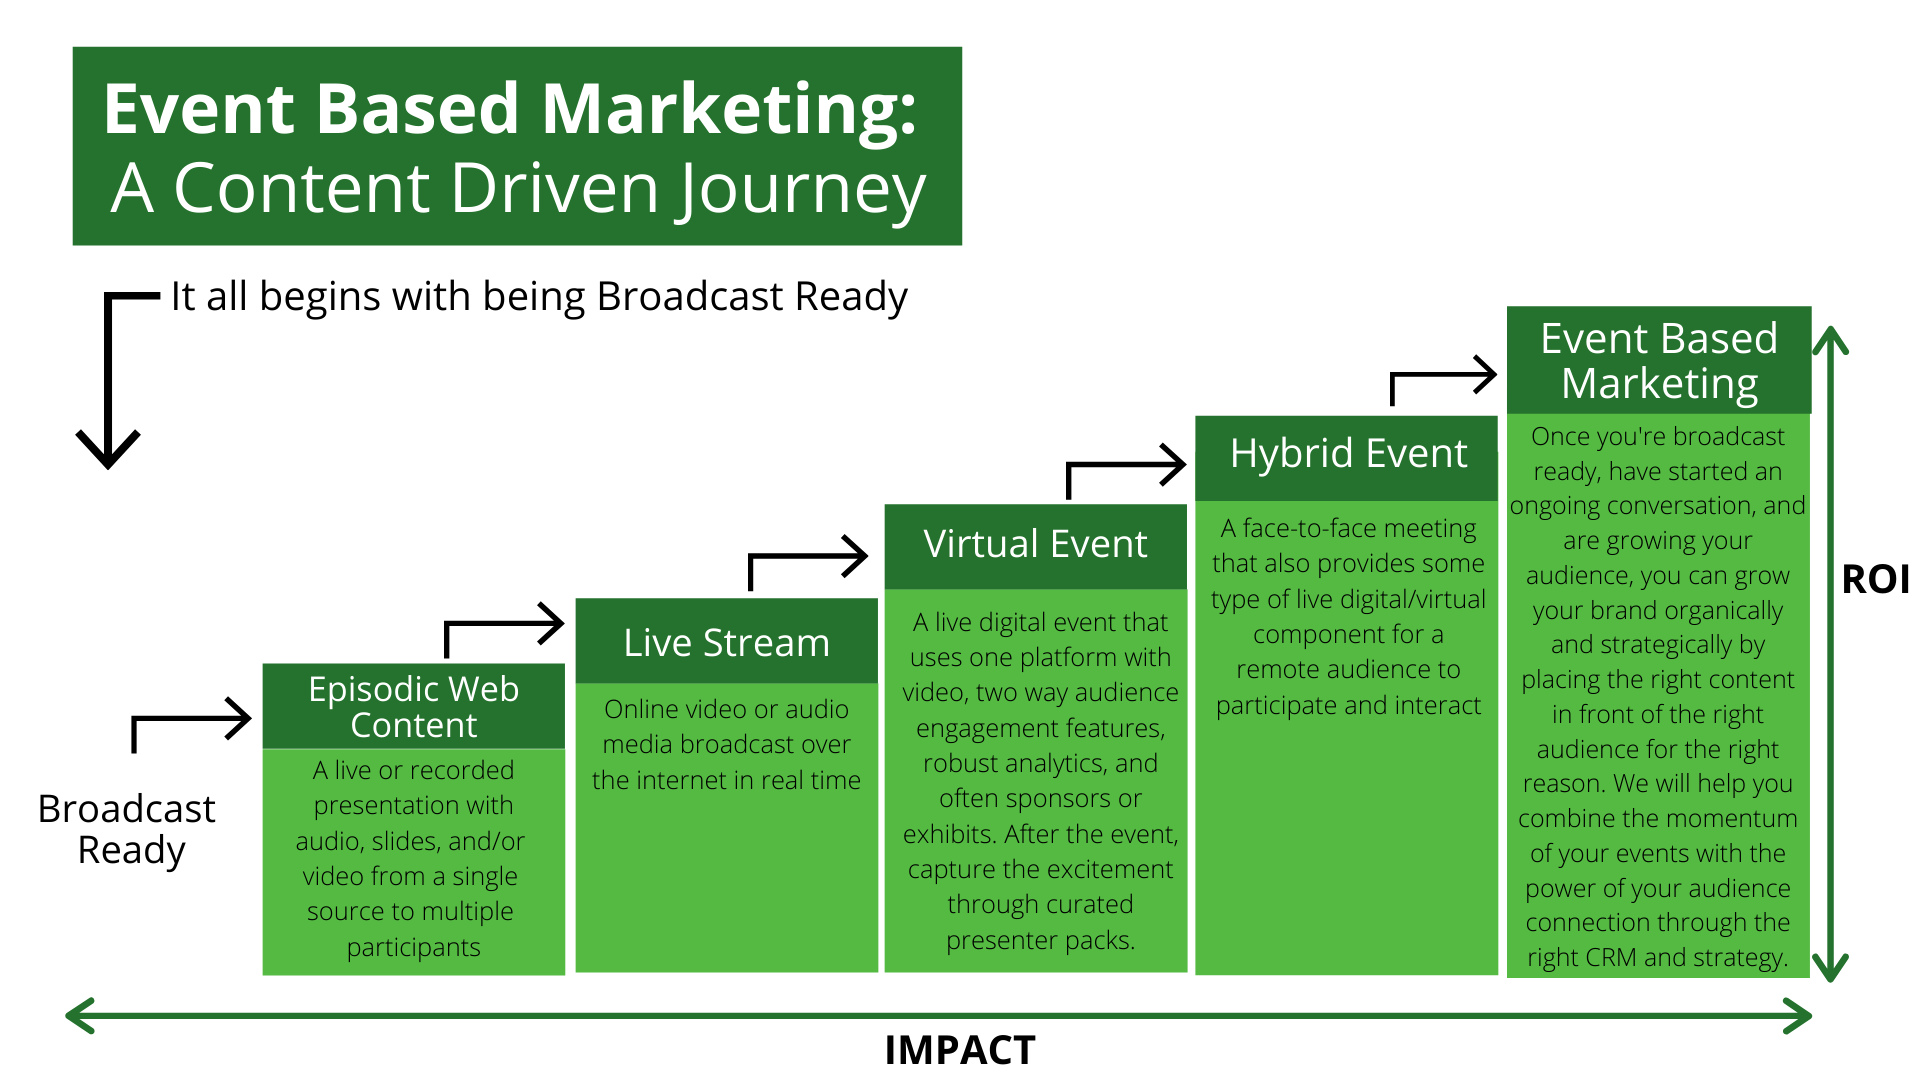 A graph showing the Event Based Marketing journey